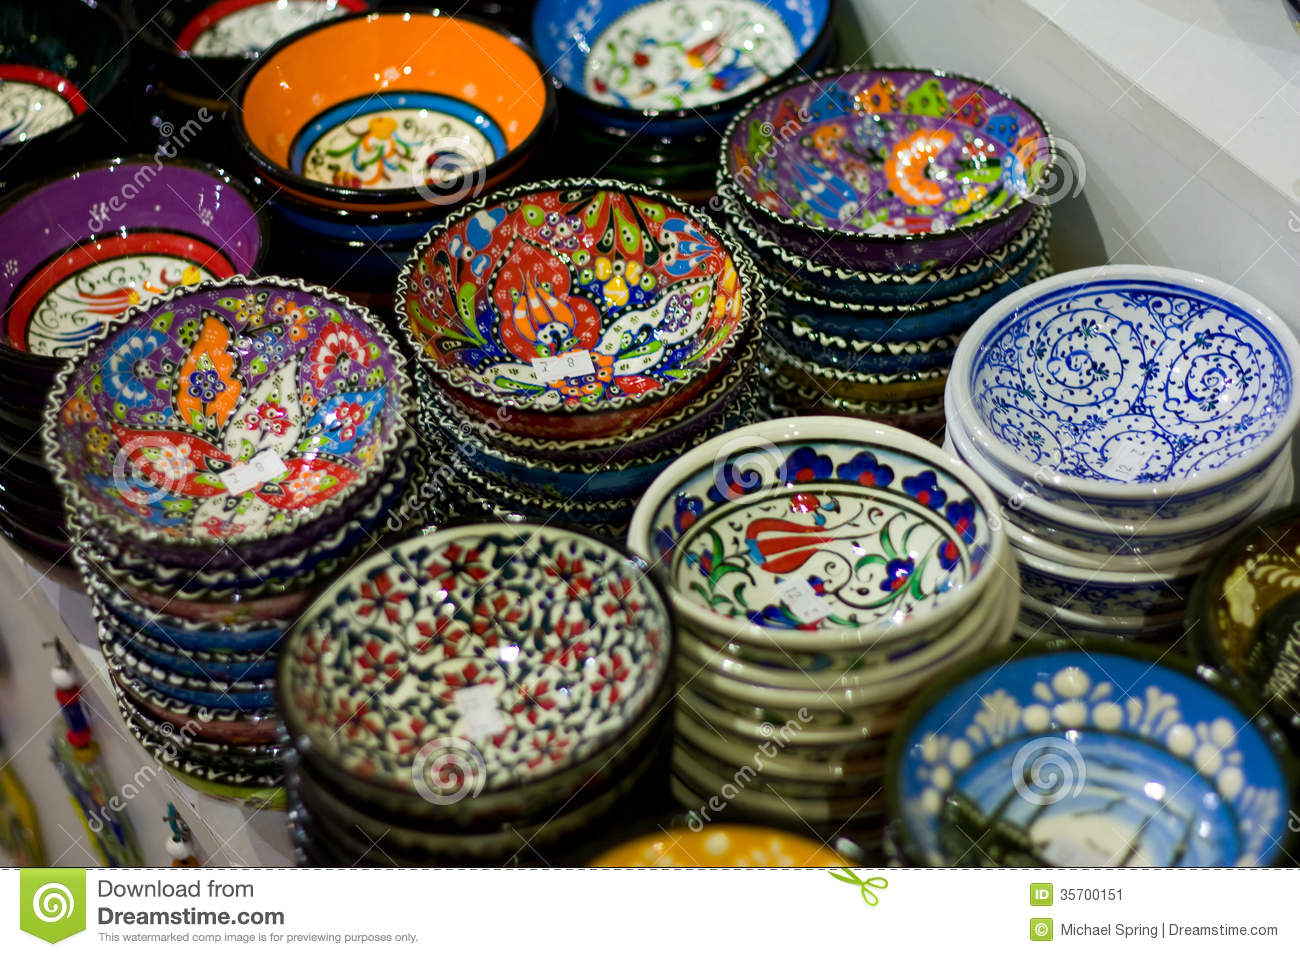 Turkish crafts stock image image 35700151 for Turkey country arts and crafts